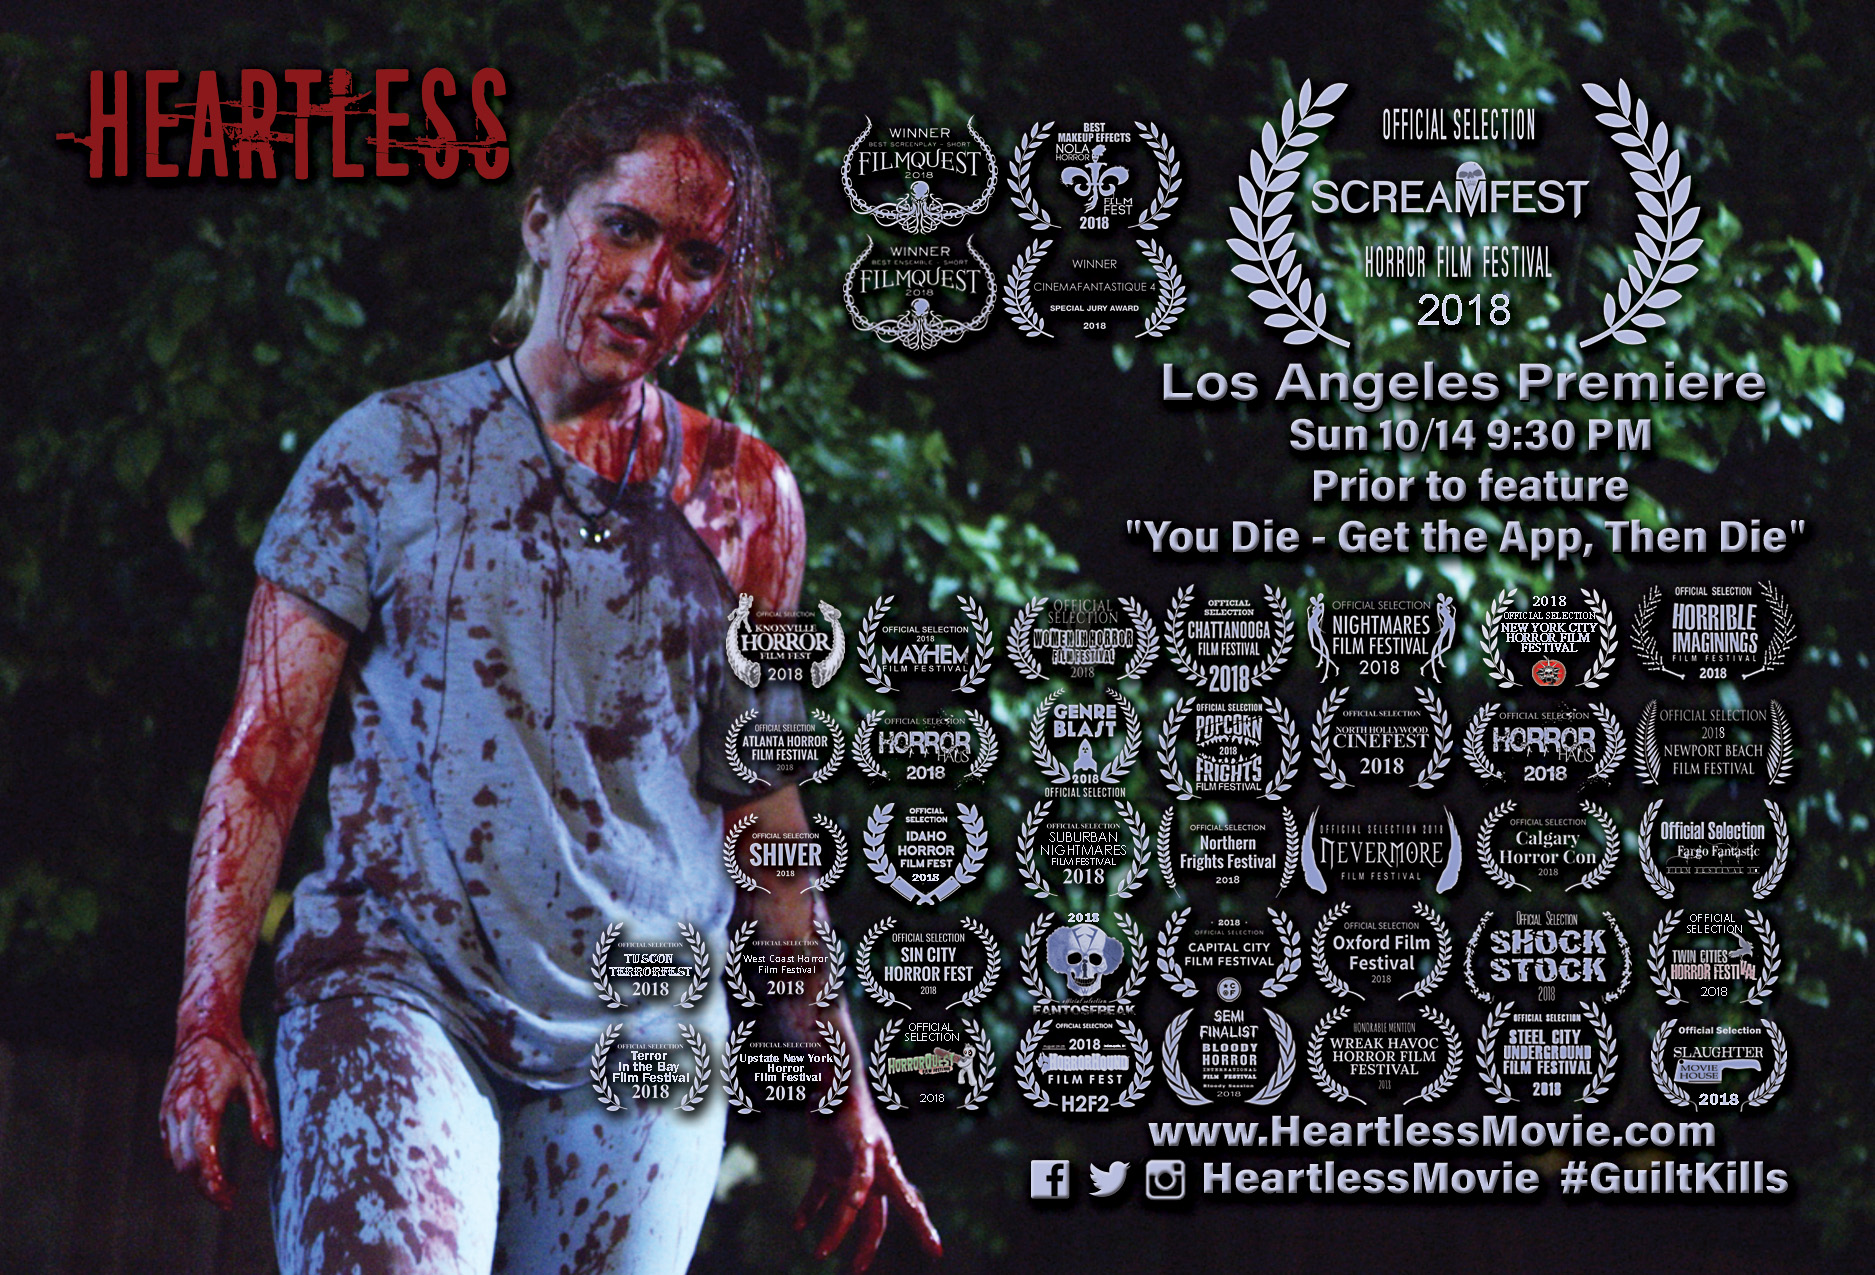 heartless bloody stacy lobby card screamfest 9.23.18 rgb for squarespace.jpg